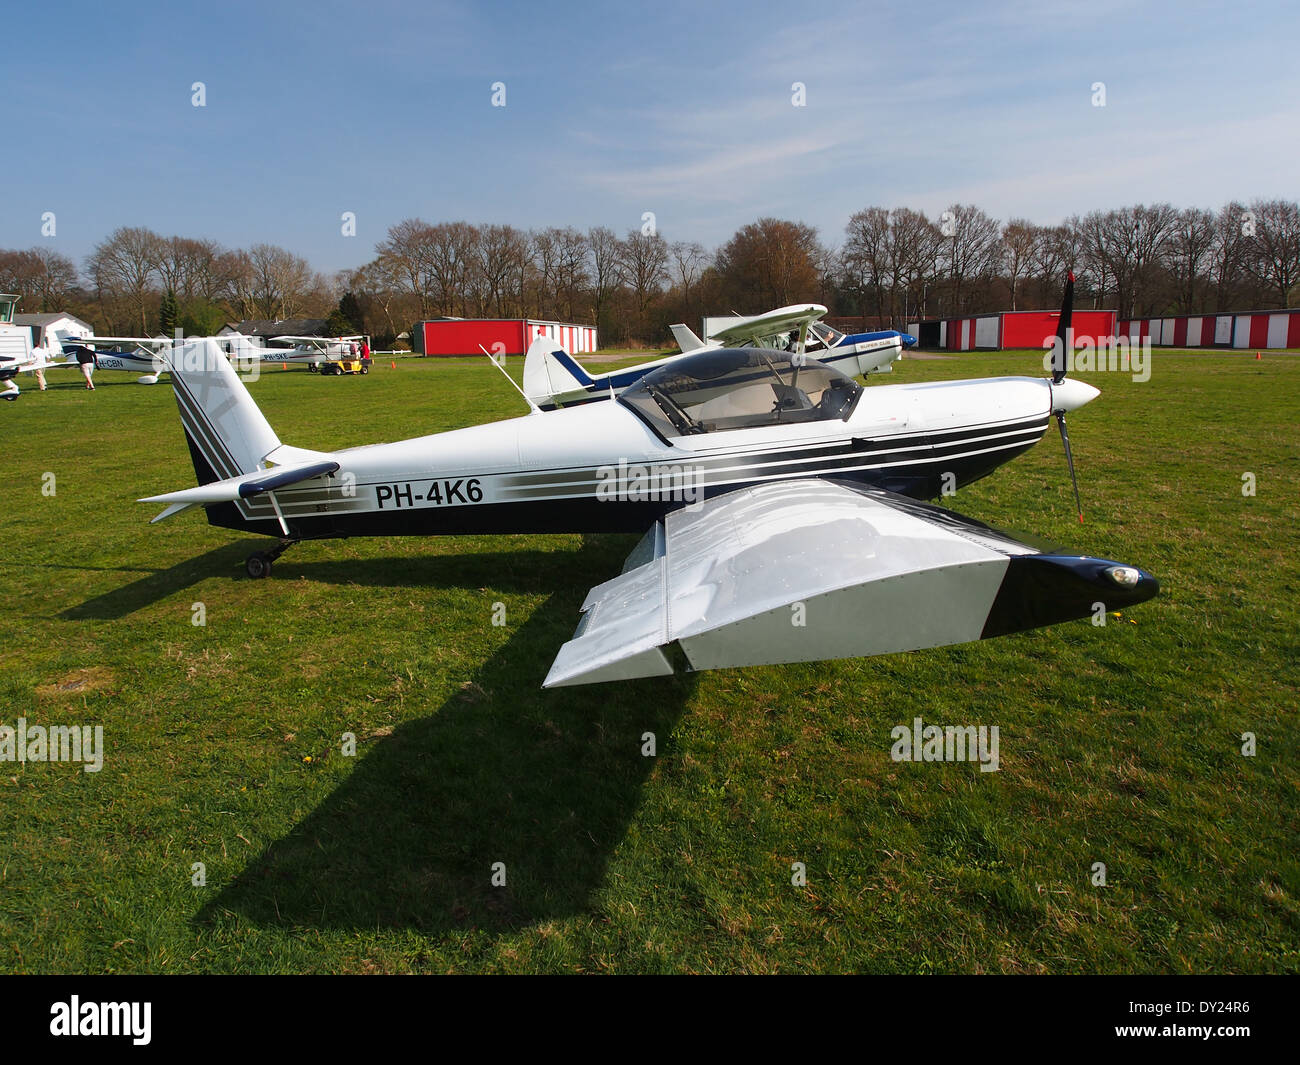 PH-4K6, Czech AC Wor, CH 601 XL at Hilversum Airport (ICAO EHHV), photo2 - Stock Image